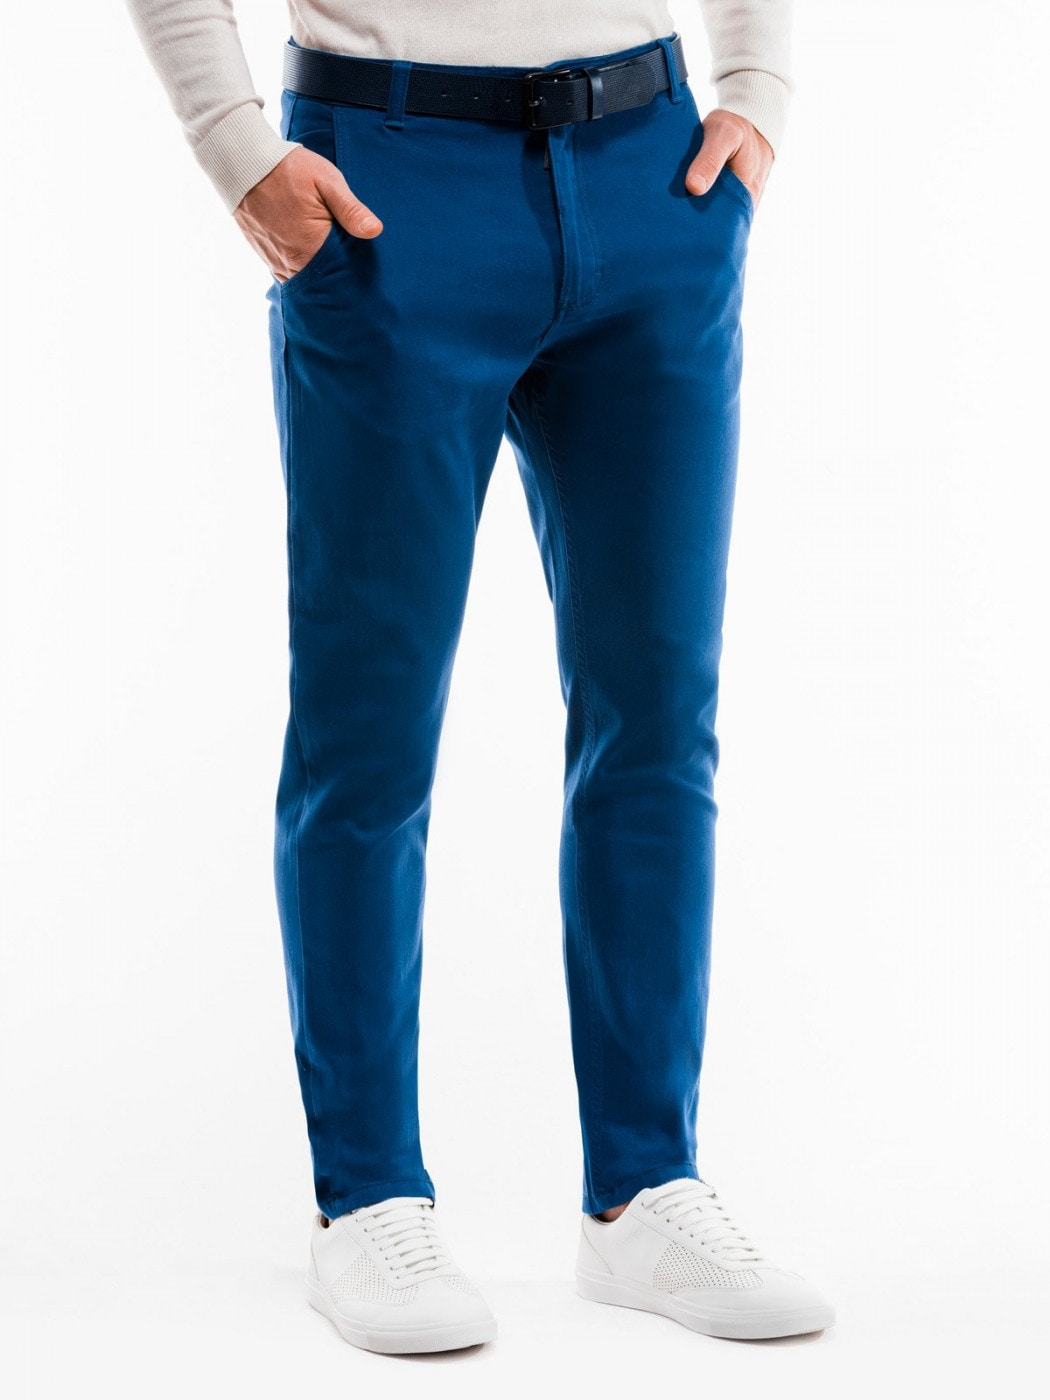 Men's pants Ombre P853